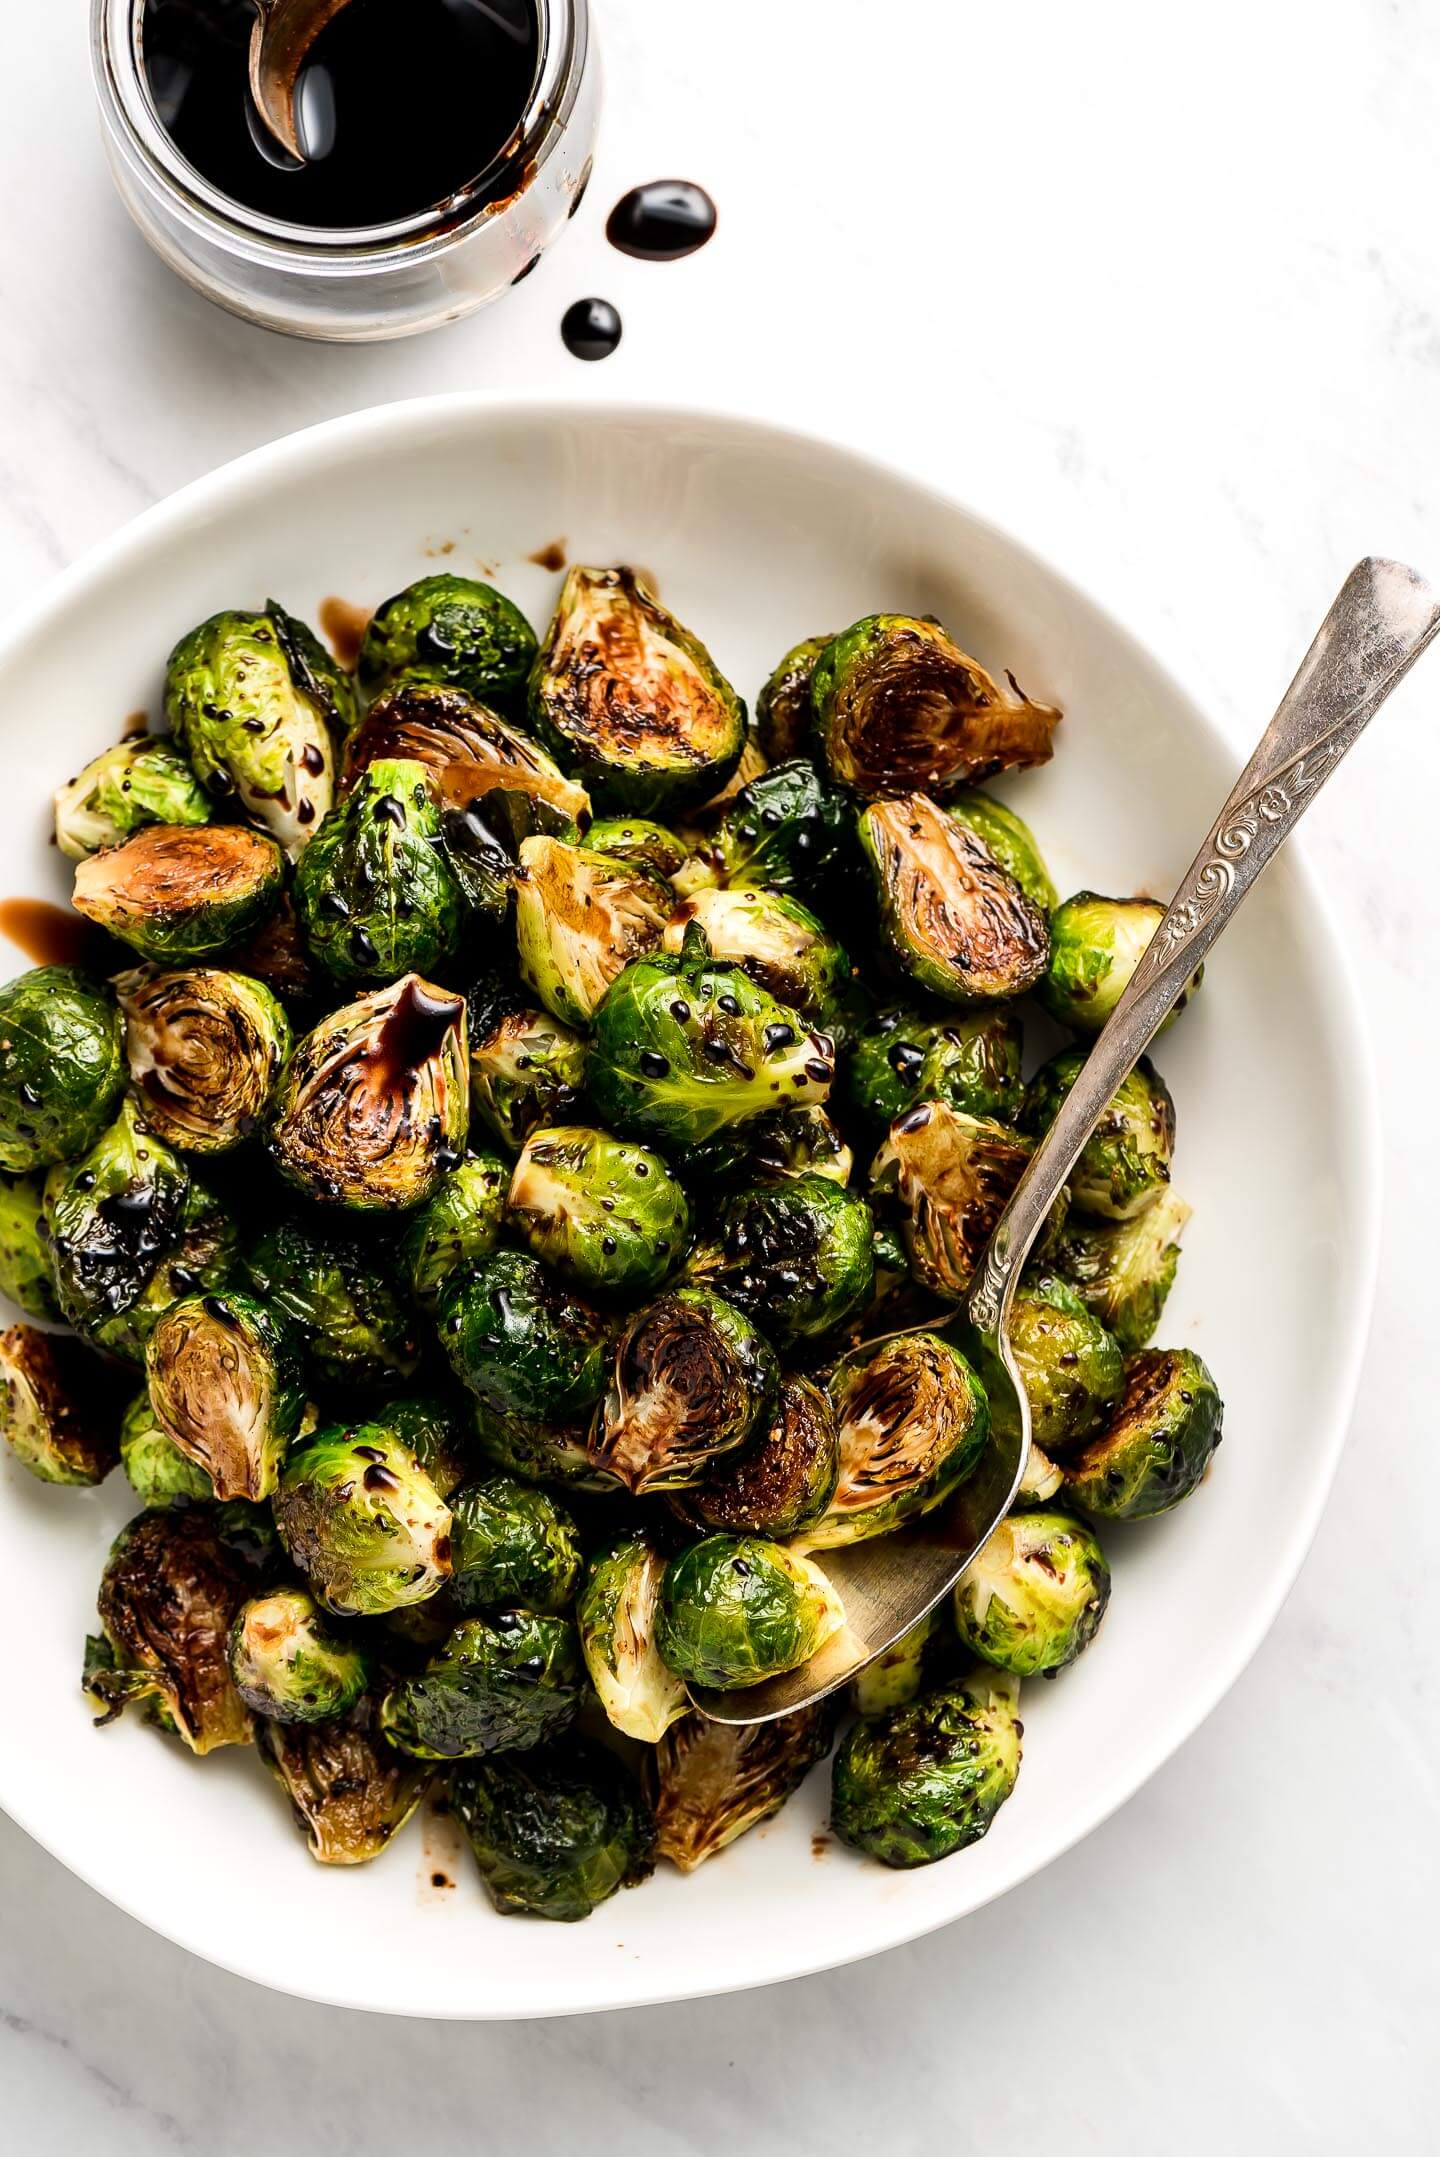 A serving bowl of Roasted Brussel Sprouts with Balsamic Glaze.